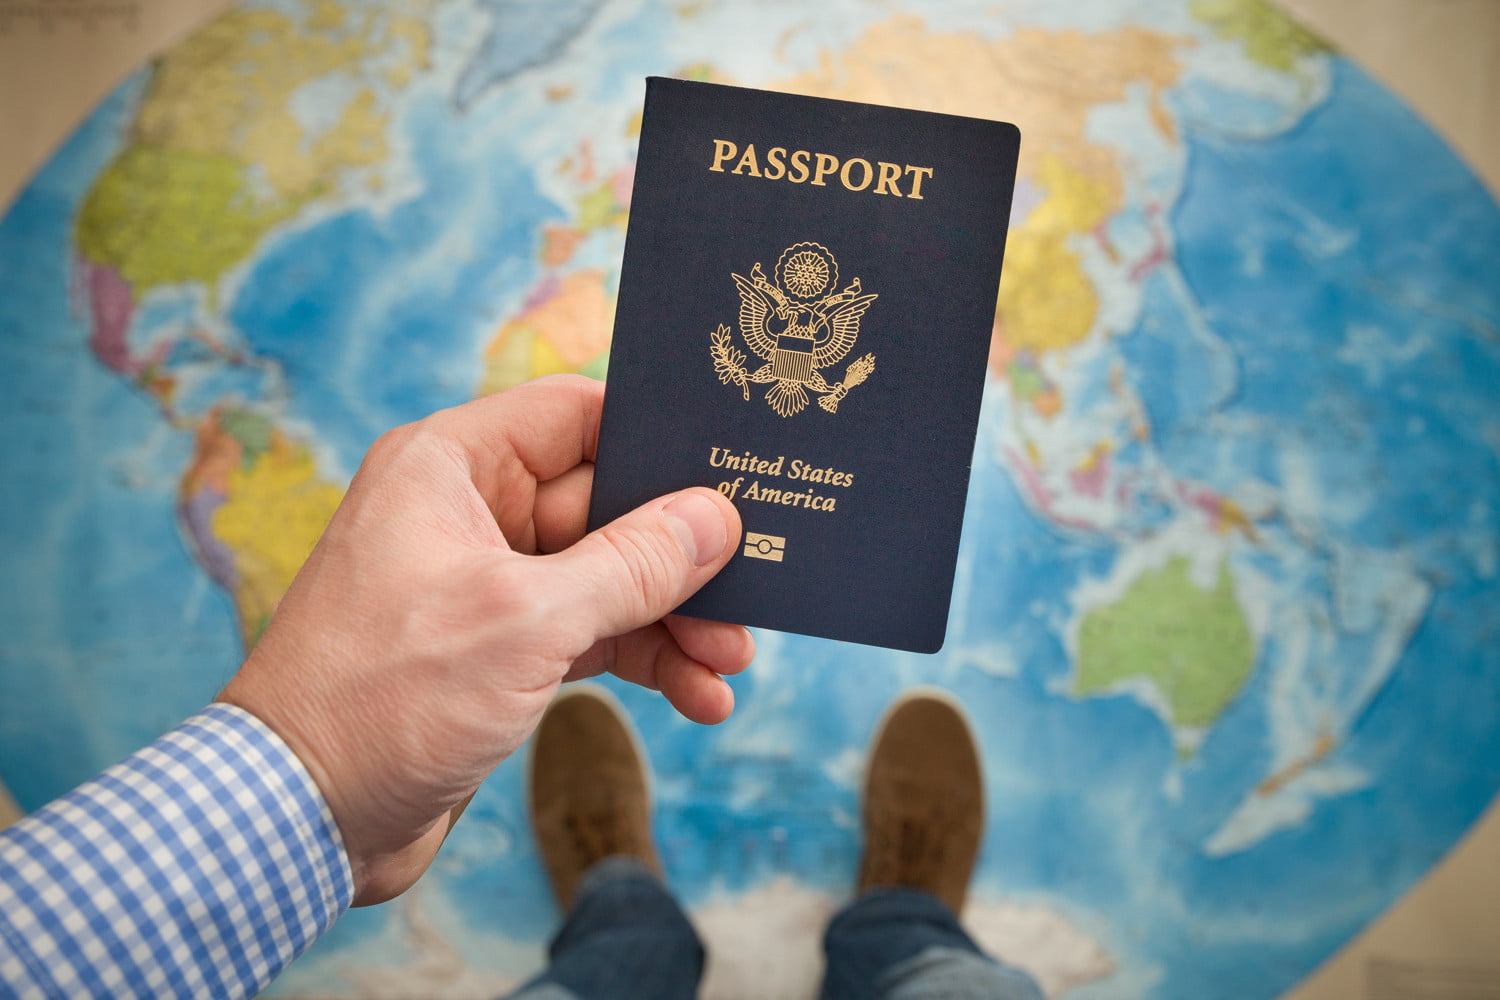 How to Take a Passport Photo | Passport Photo Requirements